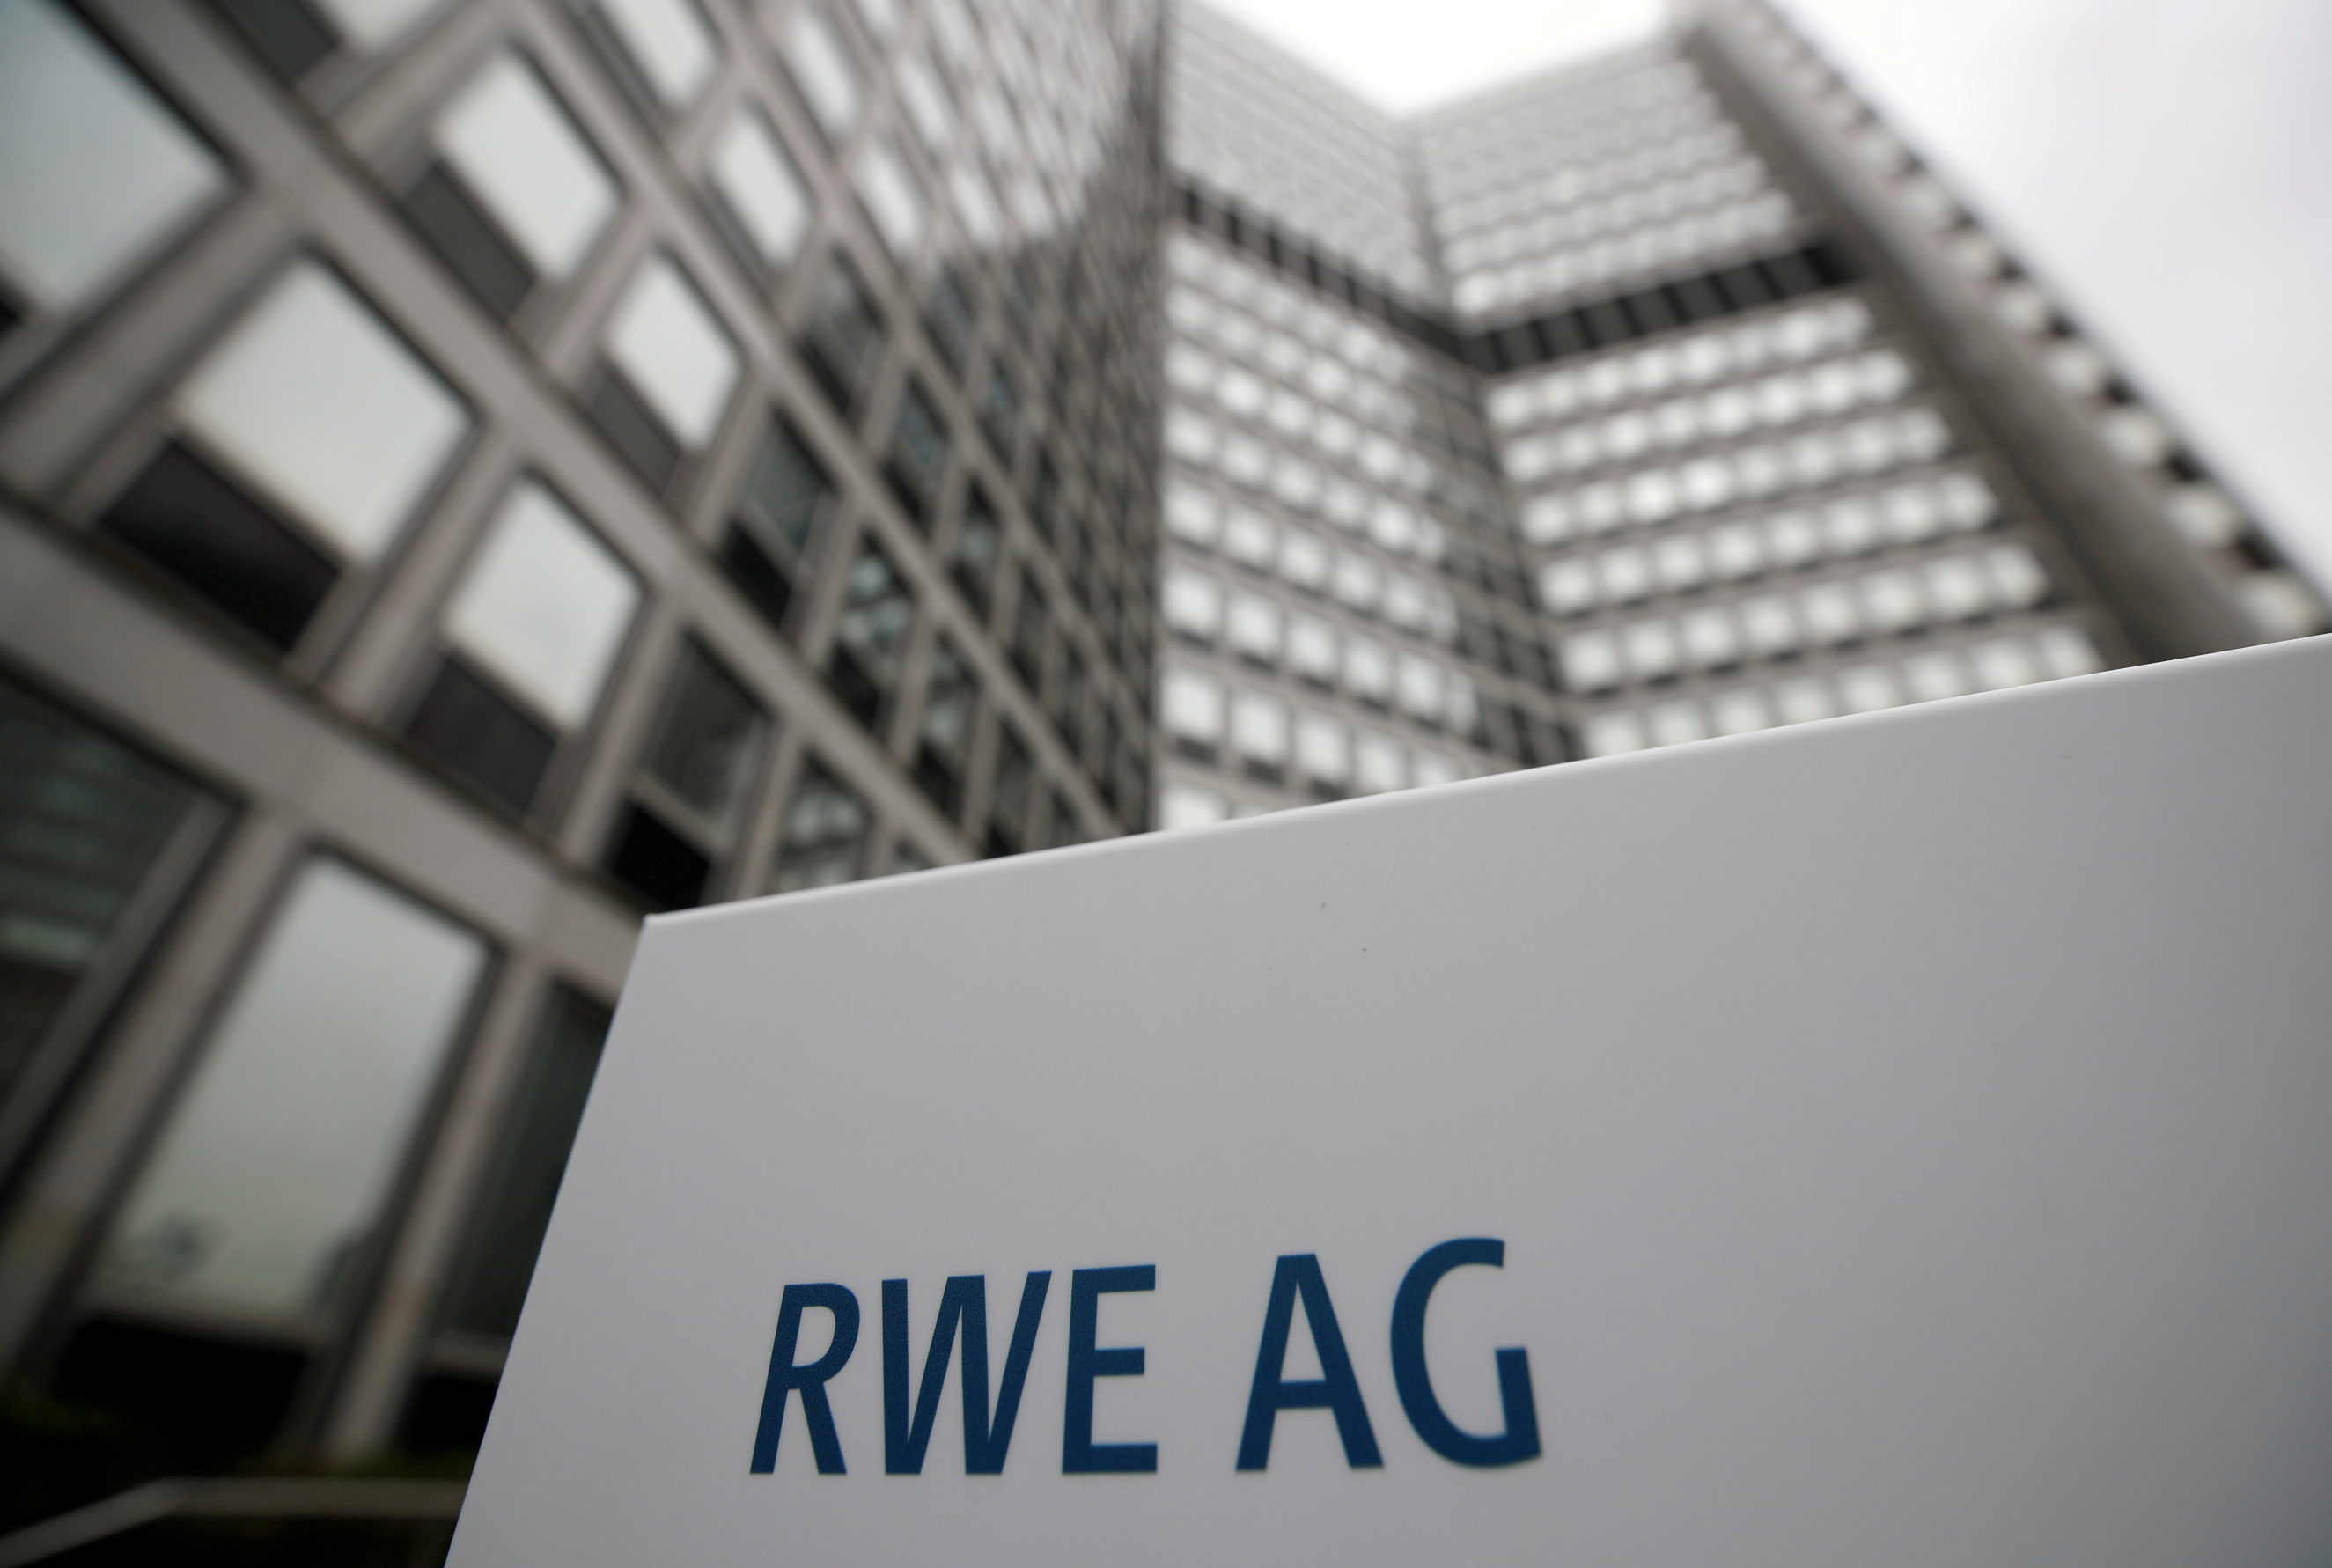 The headquarters of the German power supplier RWE, which plans to break up subsidiary Innogy and share its assets with rival E.ON, is pictured in Essen, Germany, April 24, 2018. REUTERS/Wolfgang Rattay